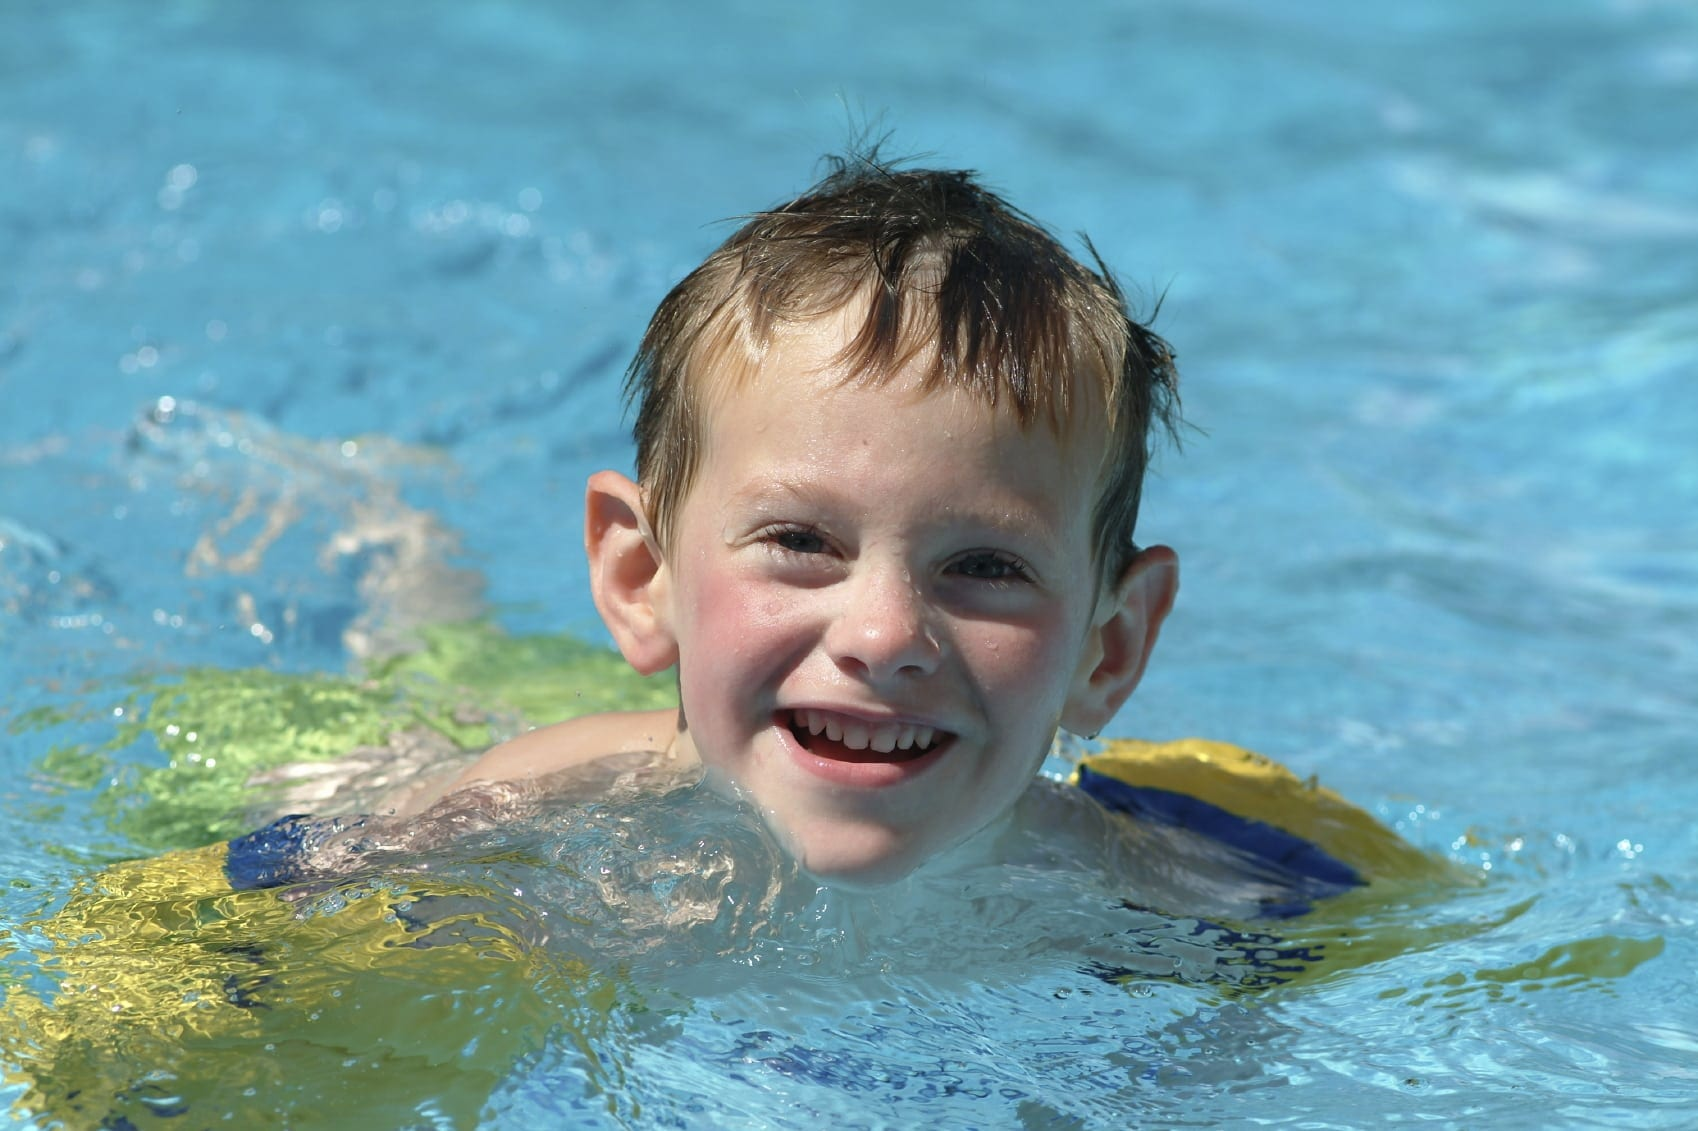 Young Boy Swimming In A Backyard Pool Stock Photo